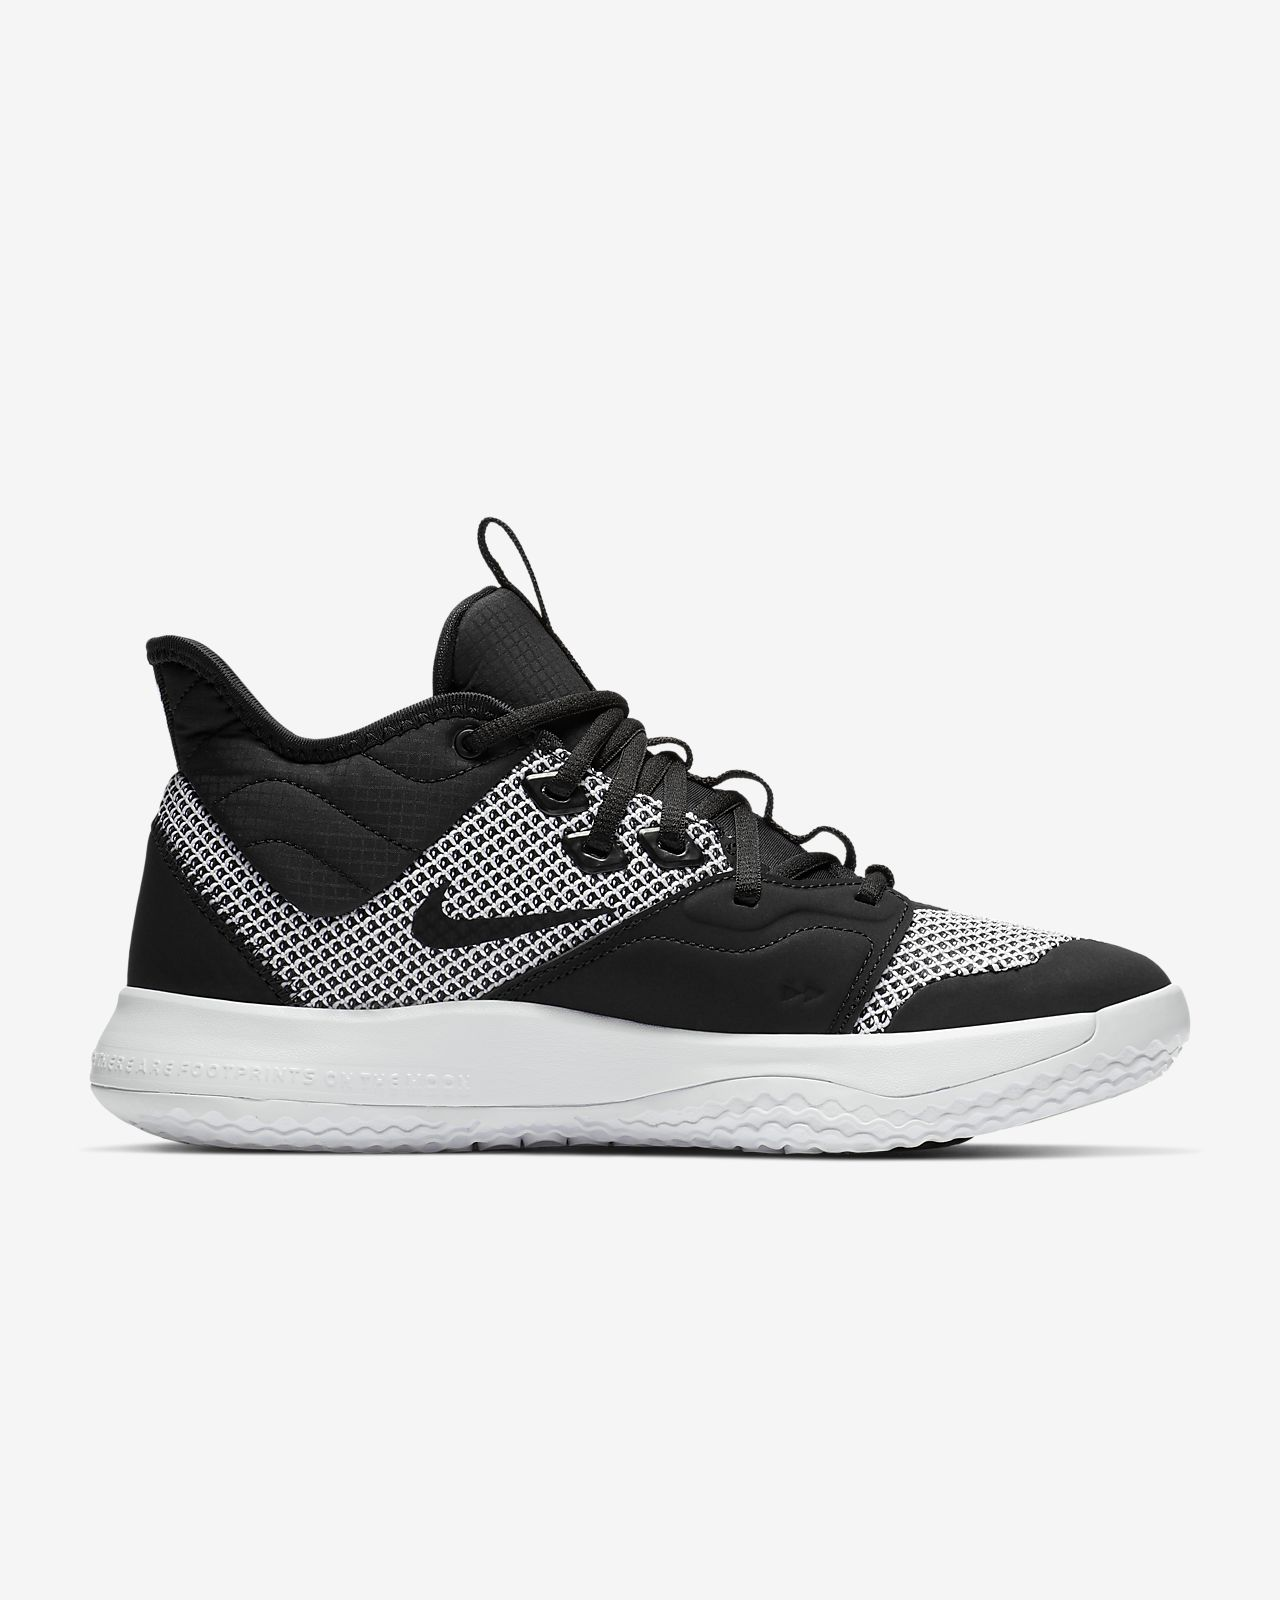 ada065a0804 Low Resolution PG 3 Basketball Shoe PG 3 Basketball Shoe